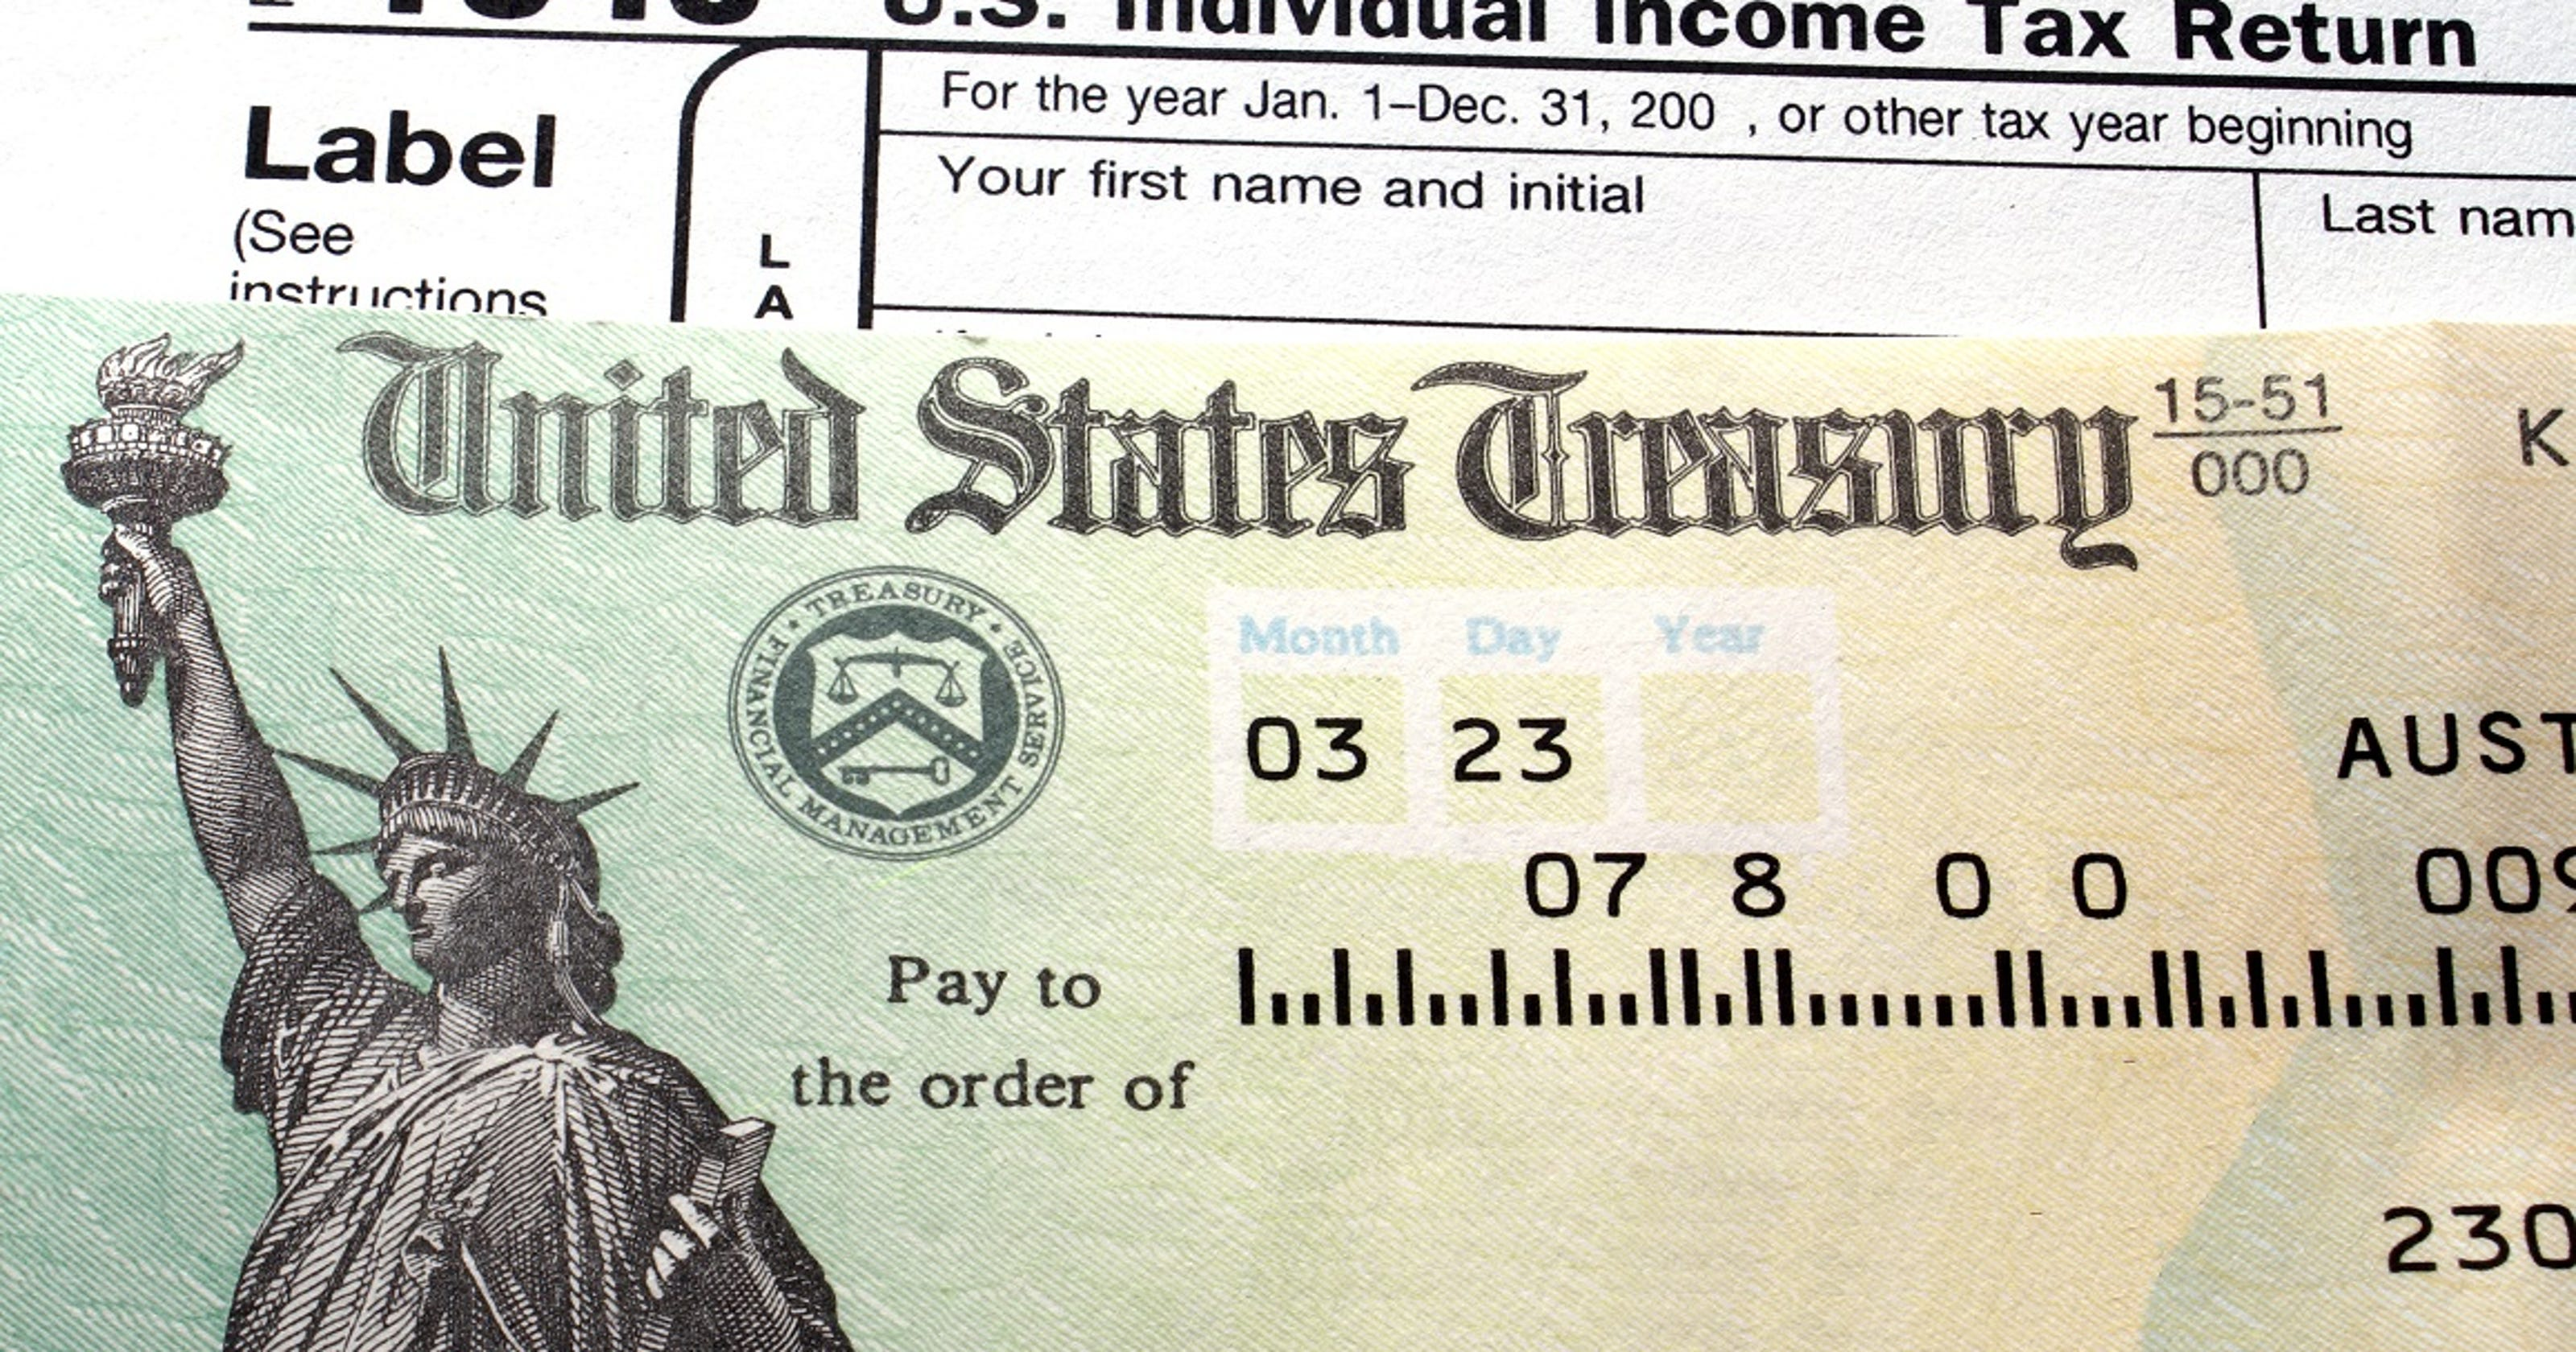 Tax refund 2019: Unexpected IRS bills burden some Americans' budgets